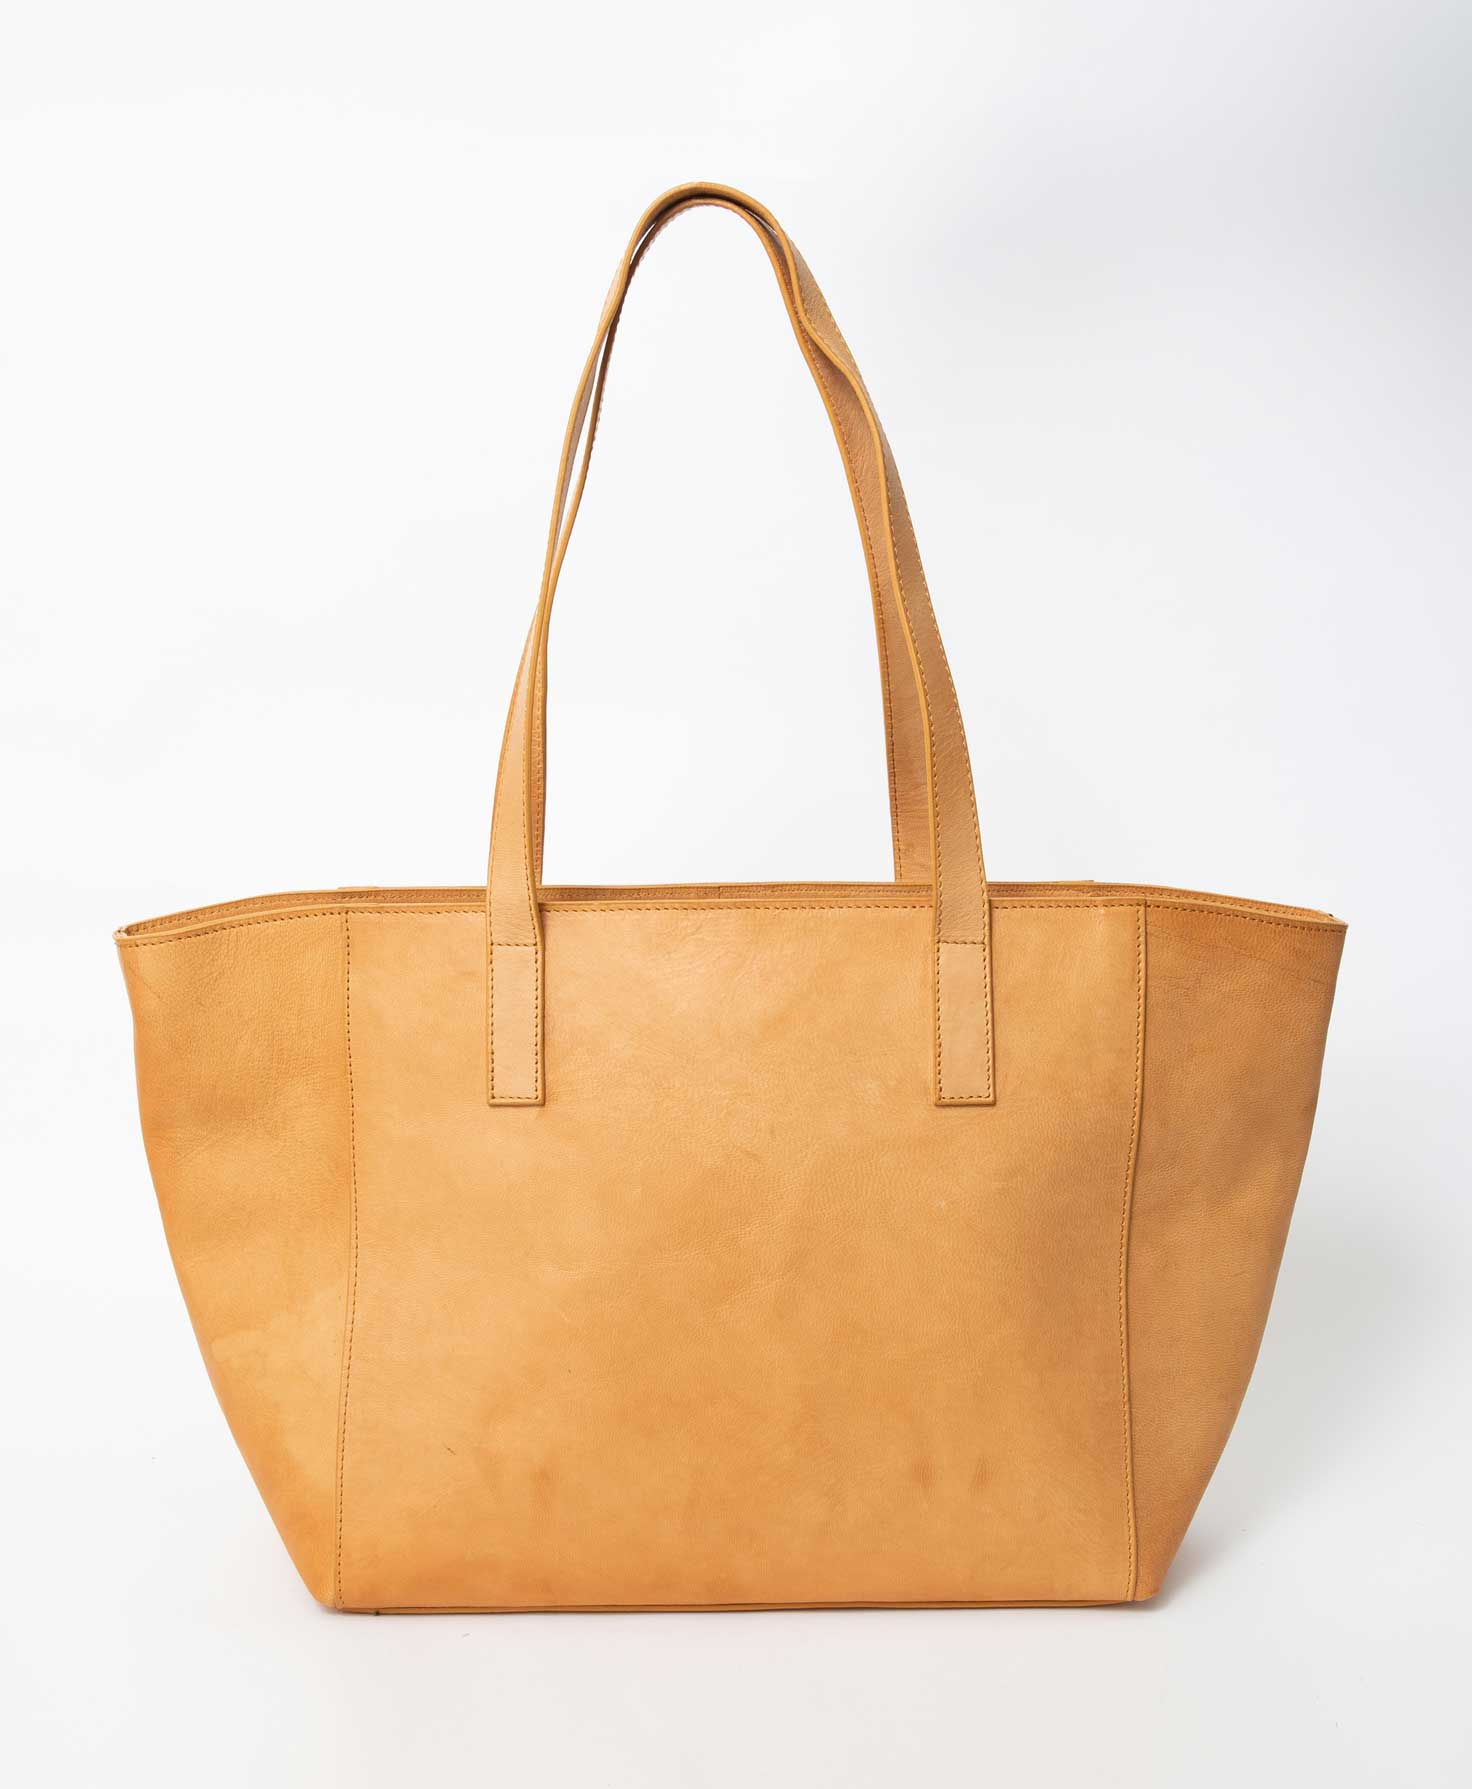 The City Tote is unzipped and its interior is shown. It features a solid black fabric lining. One of the bag's interior zipper pockets can be seen. Just below the pocket's zipper is a leather patch with